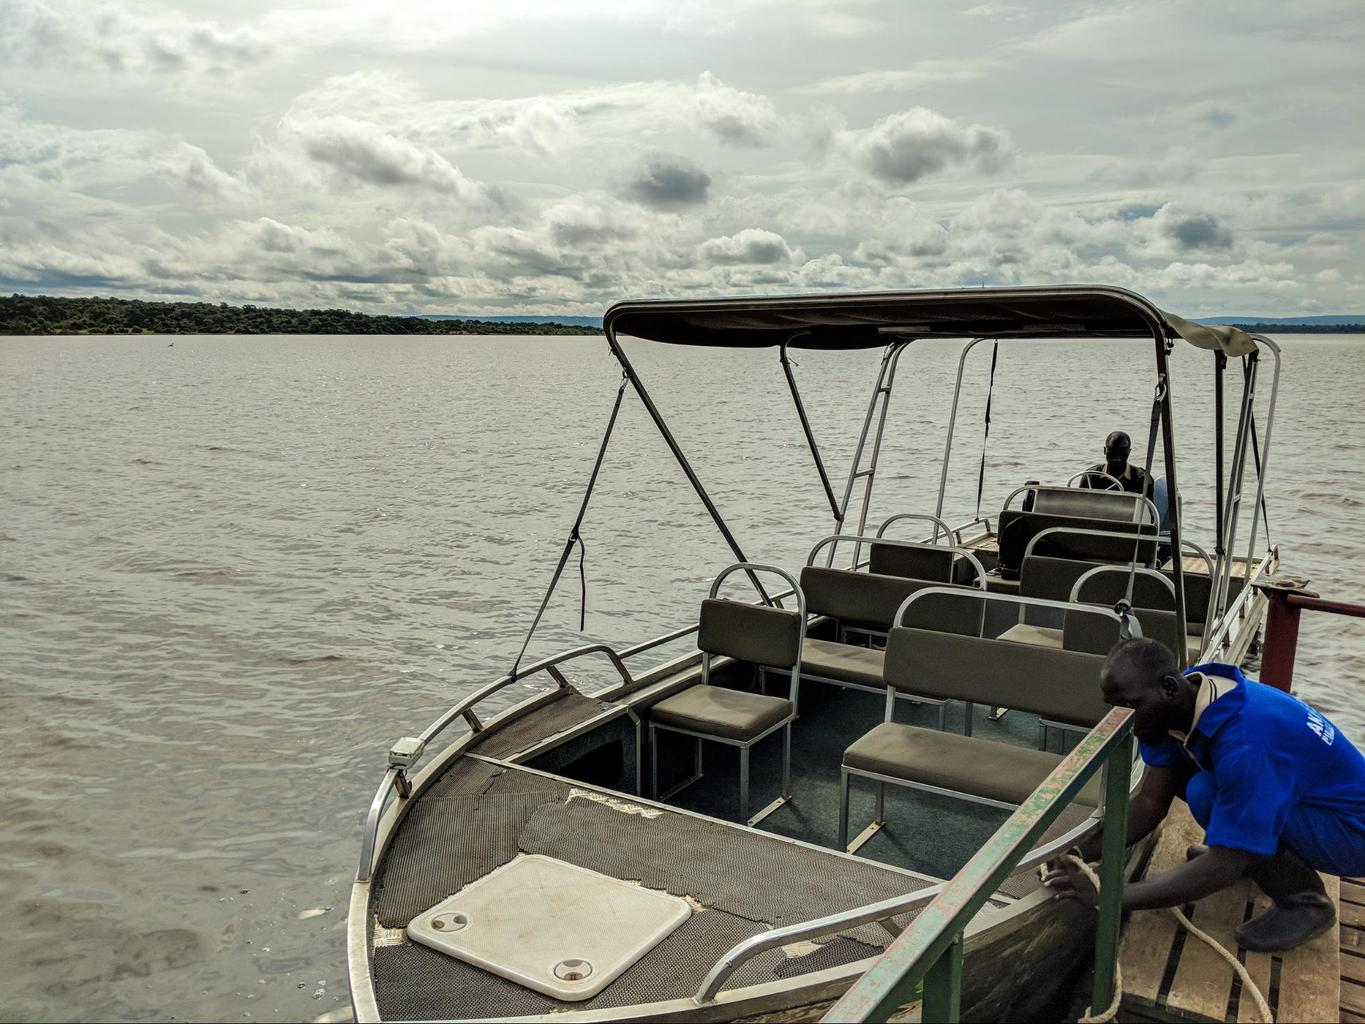 Boat cruise at Akagera National Park